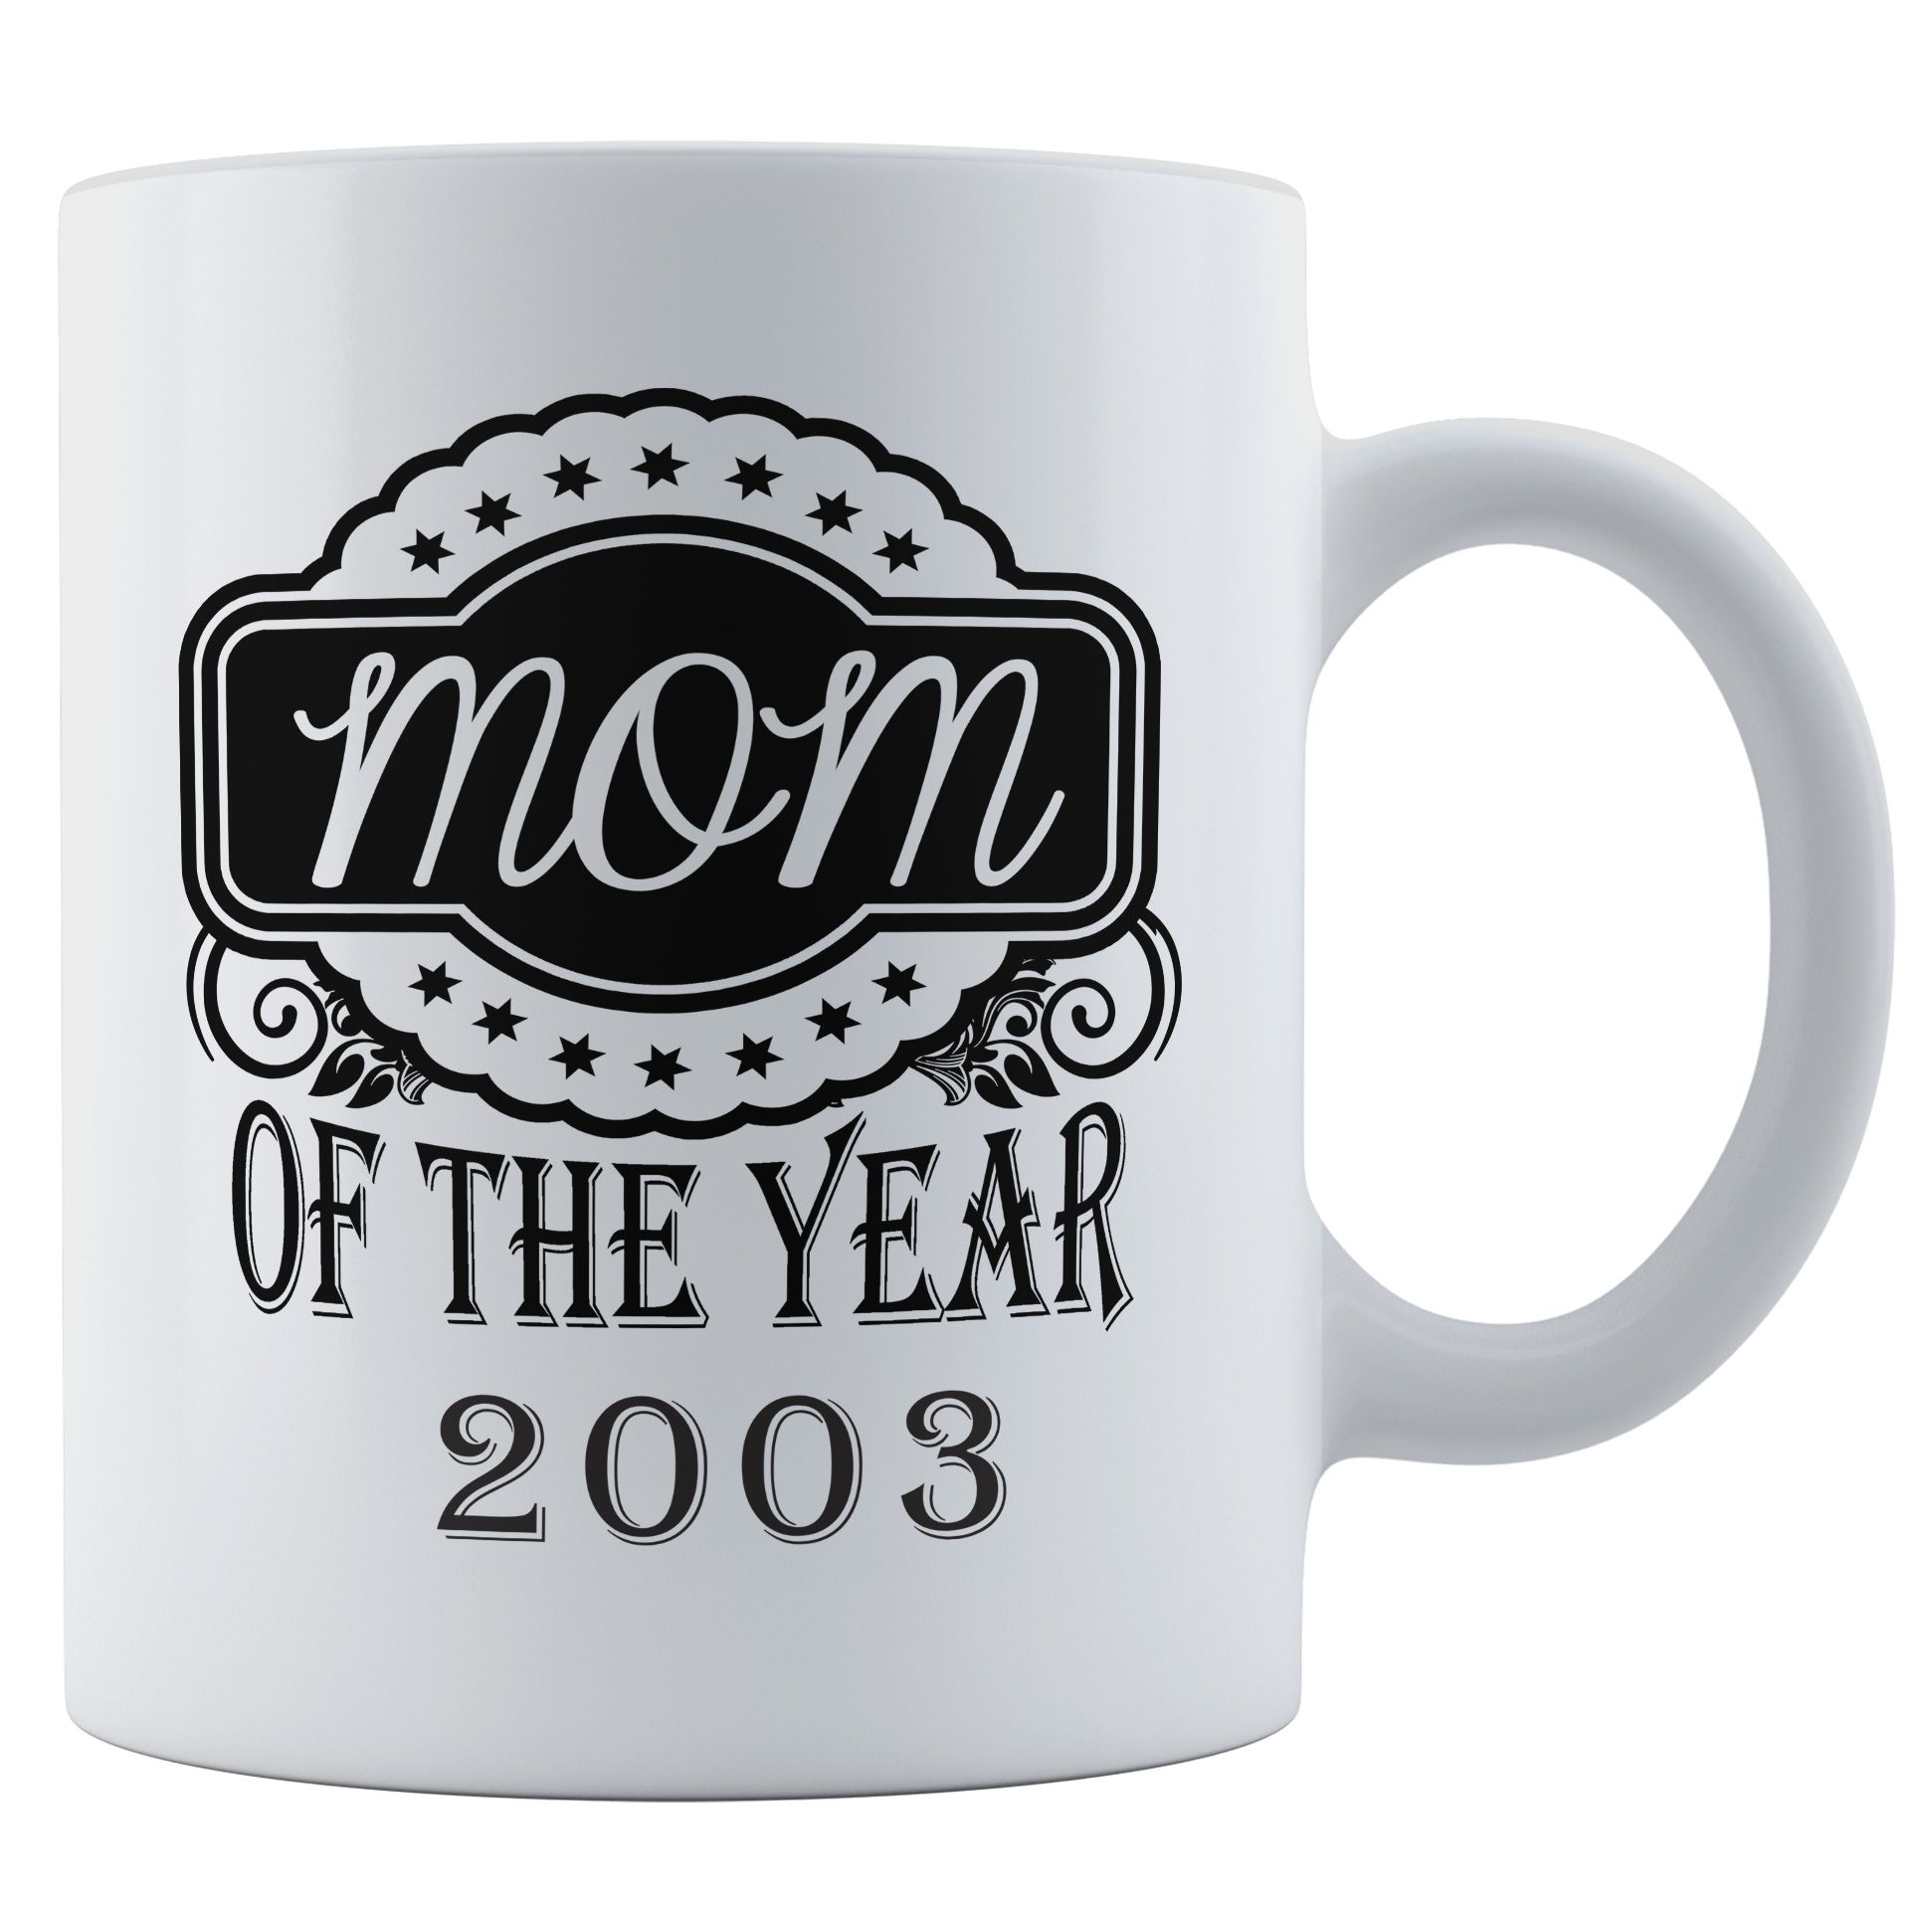 Personalized Mom Mug AN AWESOME GIFT IDEA A great gift